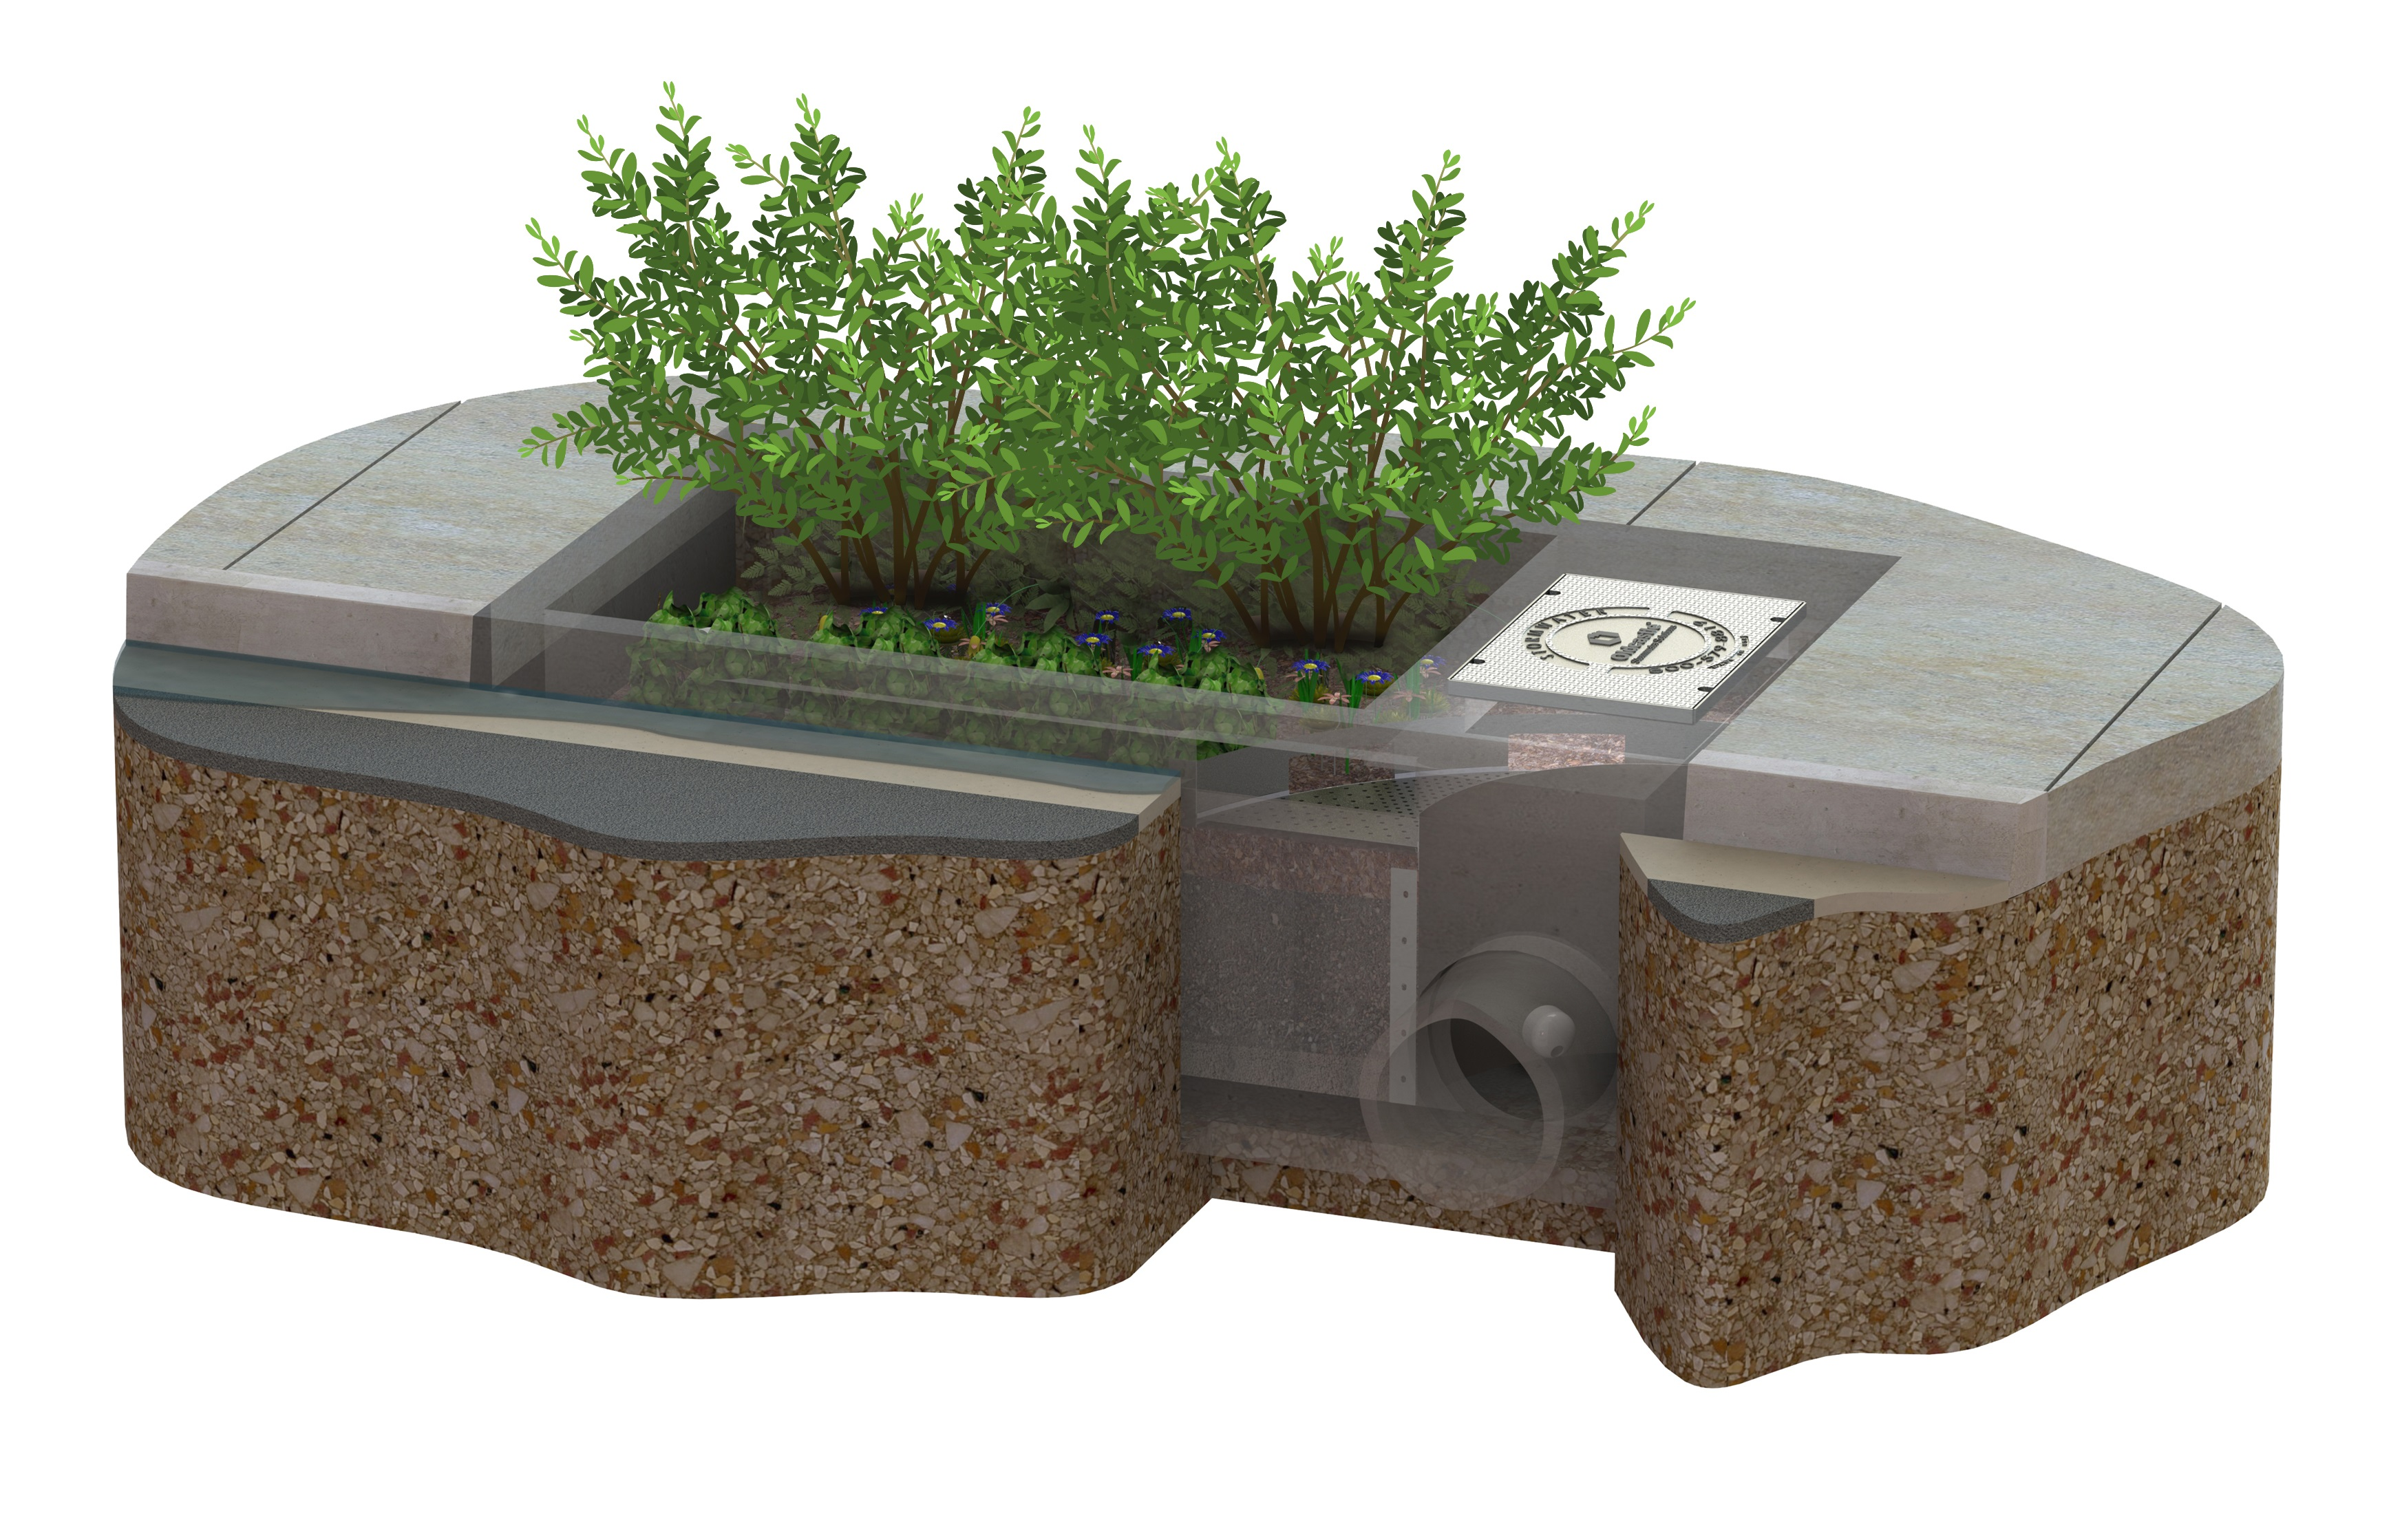 New Biopod Biofilter With Stormmix Media Receives